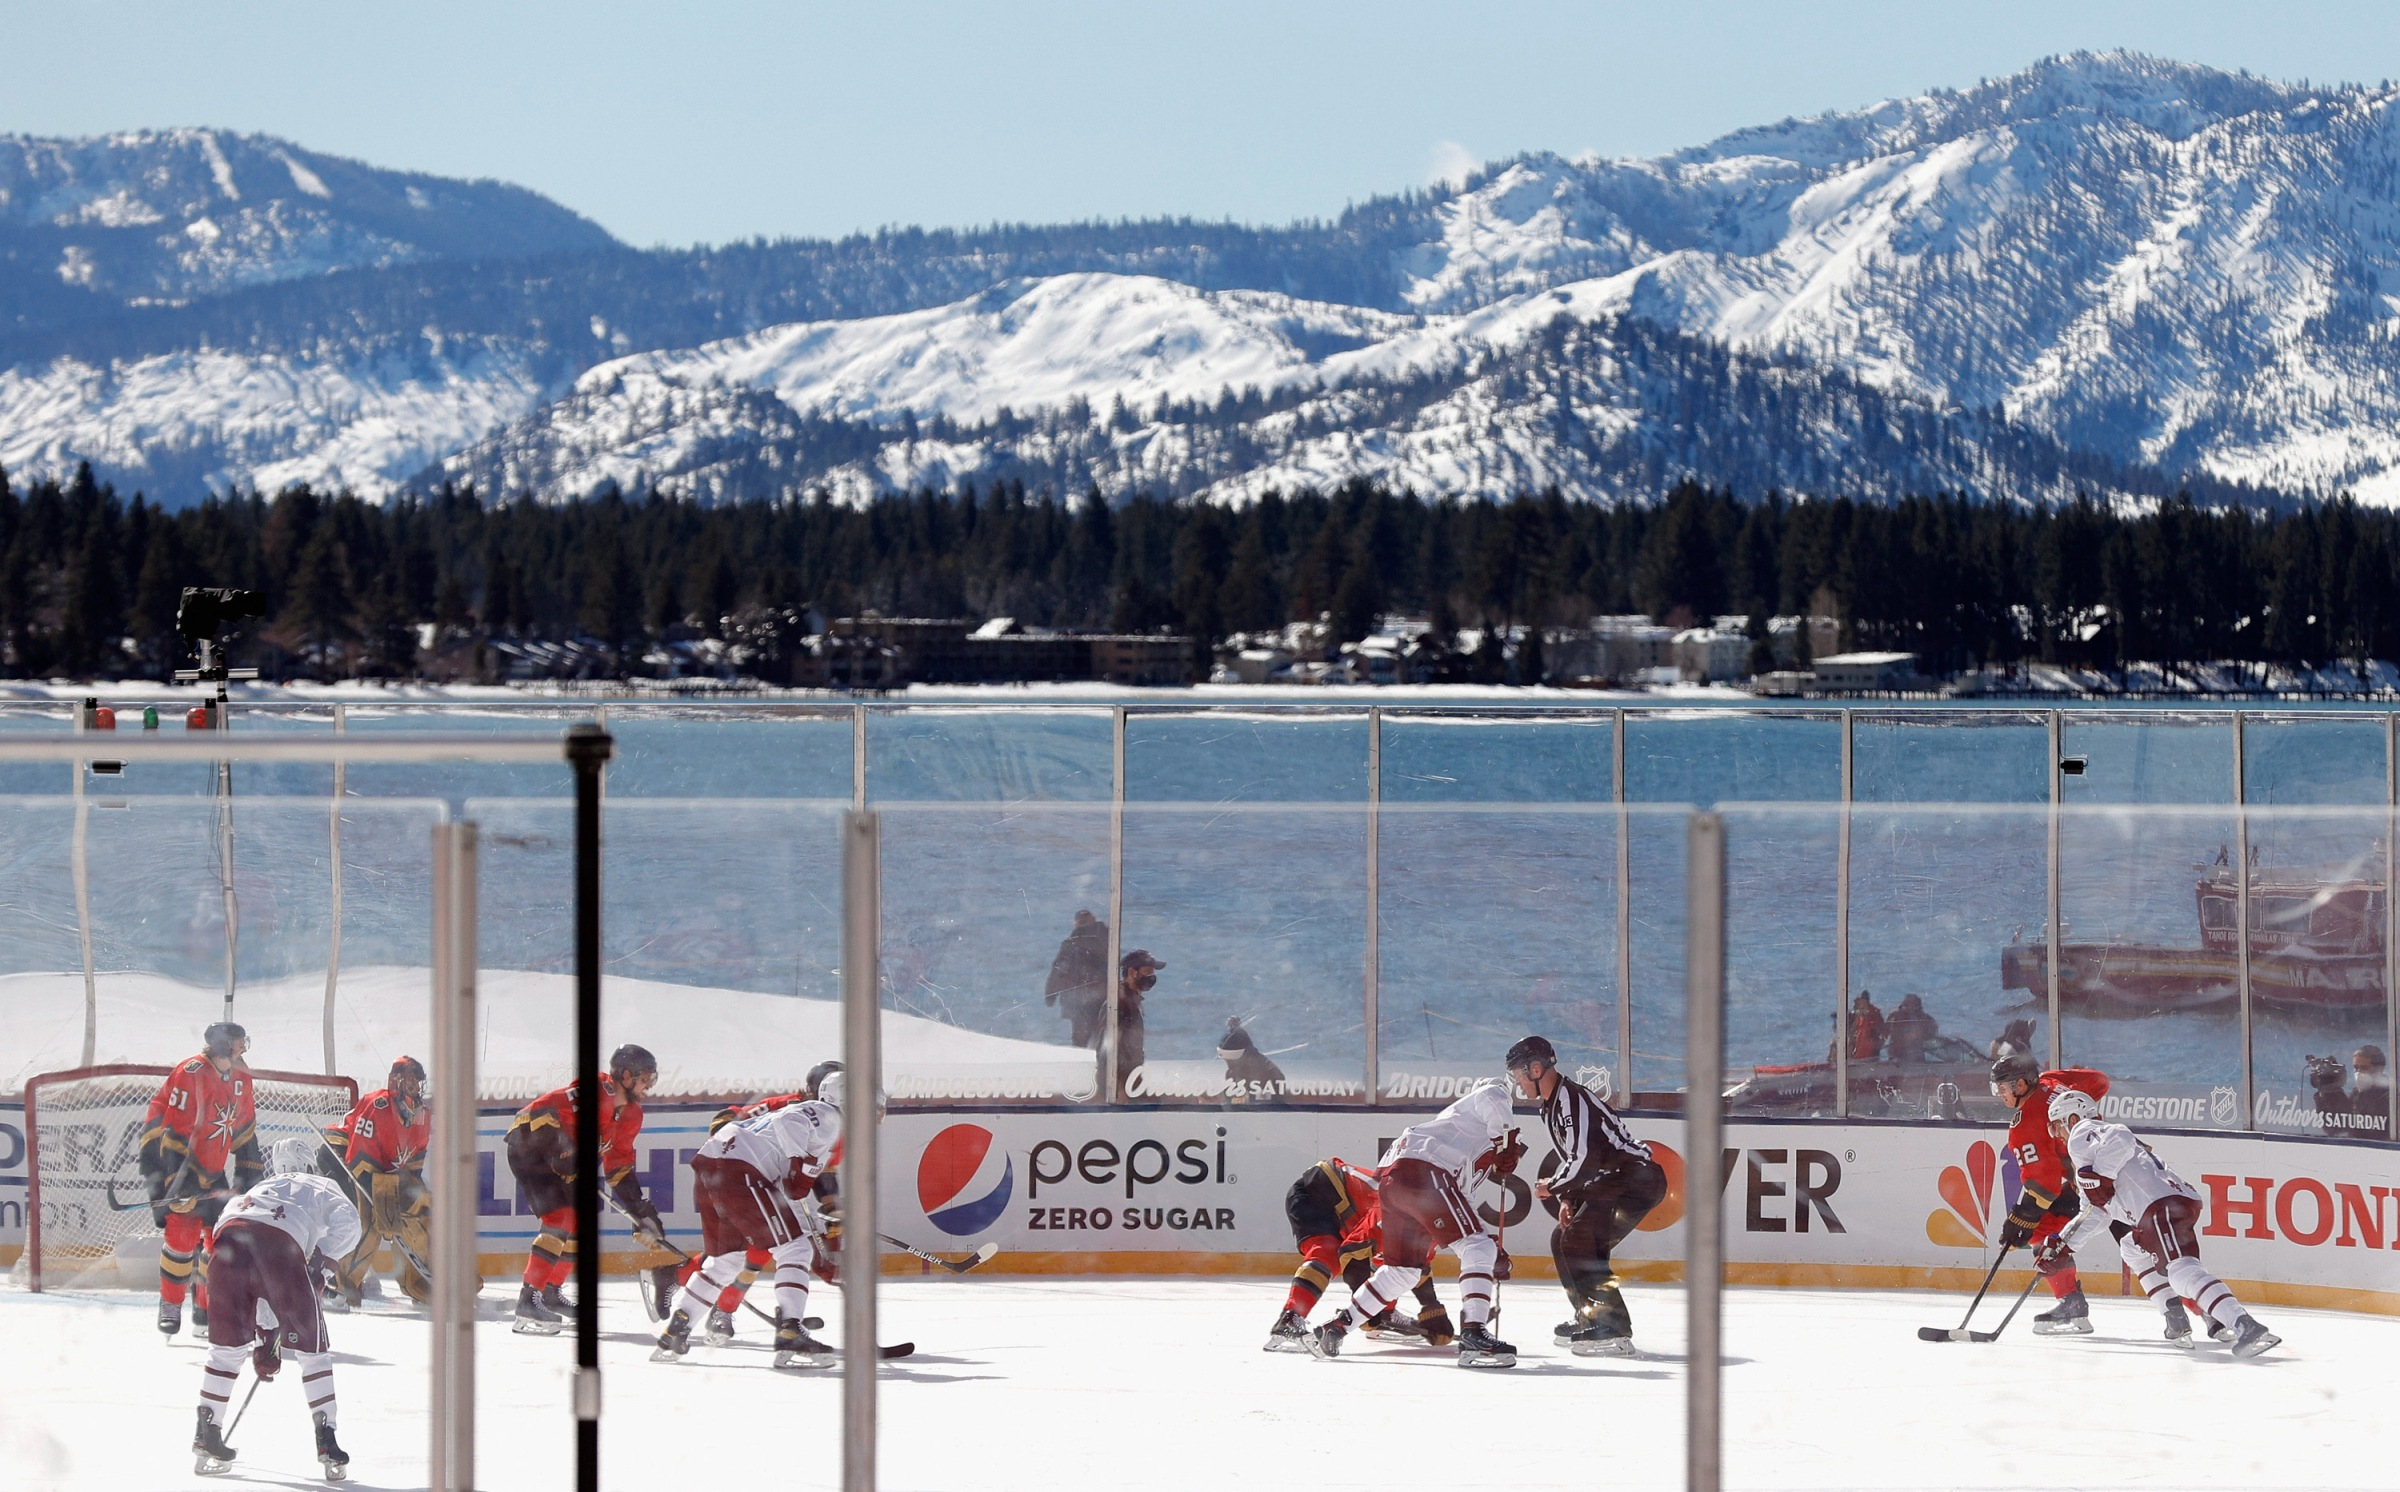 STATELINE, NEVADA - FEBRUARY 20: The Vegas Golden Knights skate against the Colorado Avalanche during the NHL Outdoors at Lake Tahoe at the Edgewood Tahoe Resort on February 20, 2021 in Stateline, Nevada. (Photo by Ezra Shaw/Getty Images)